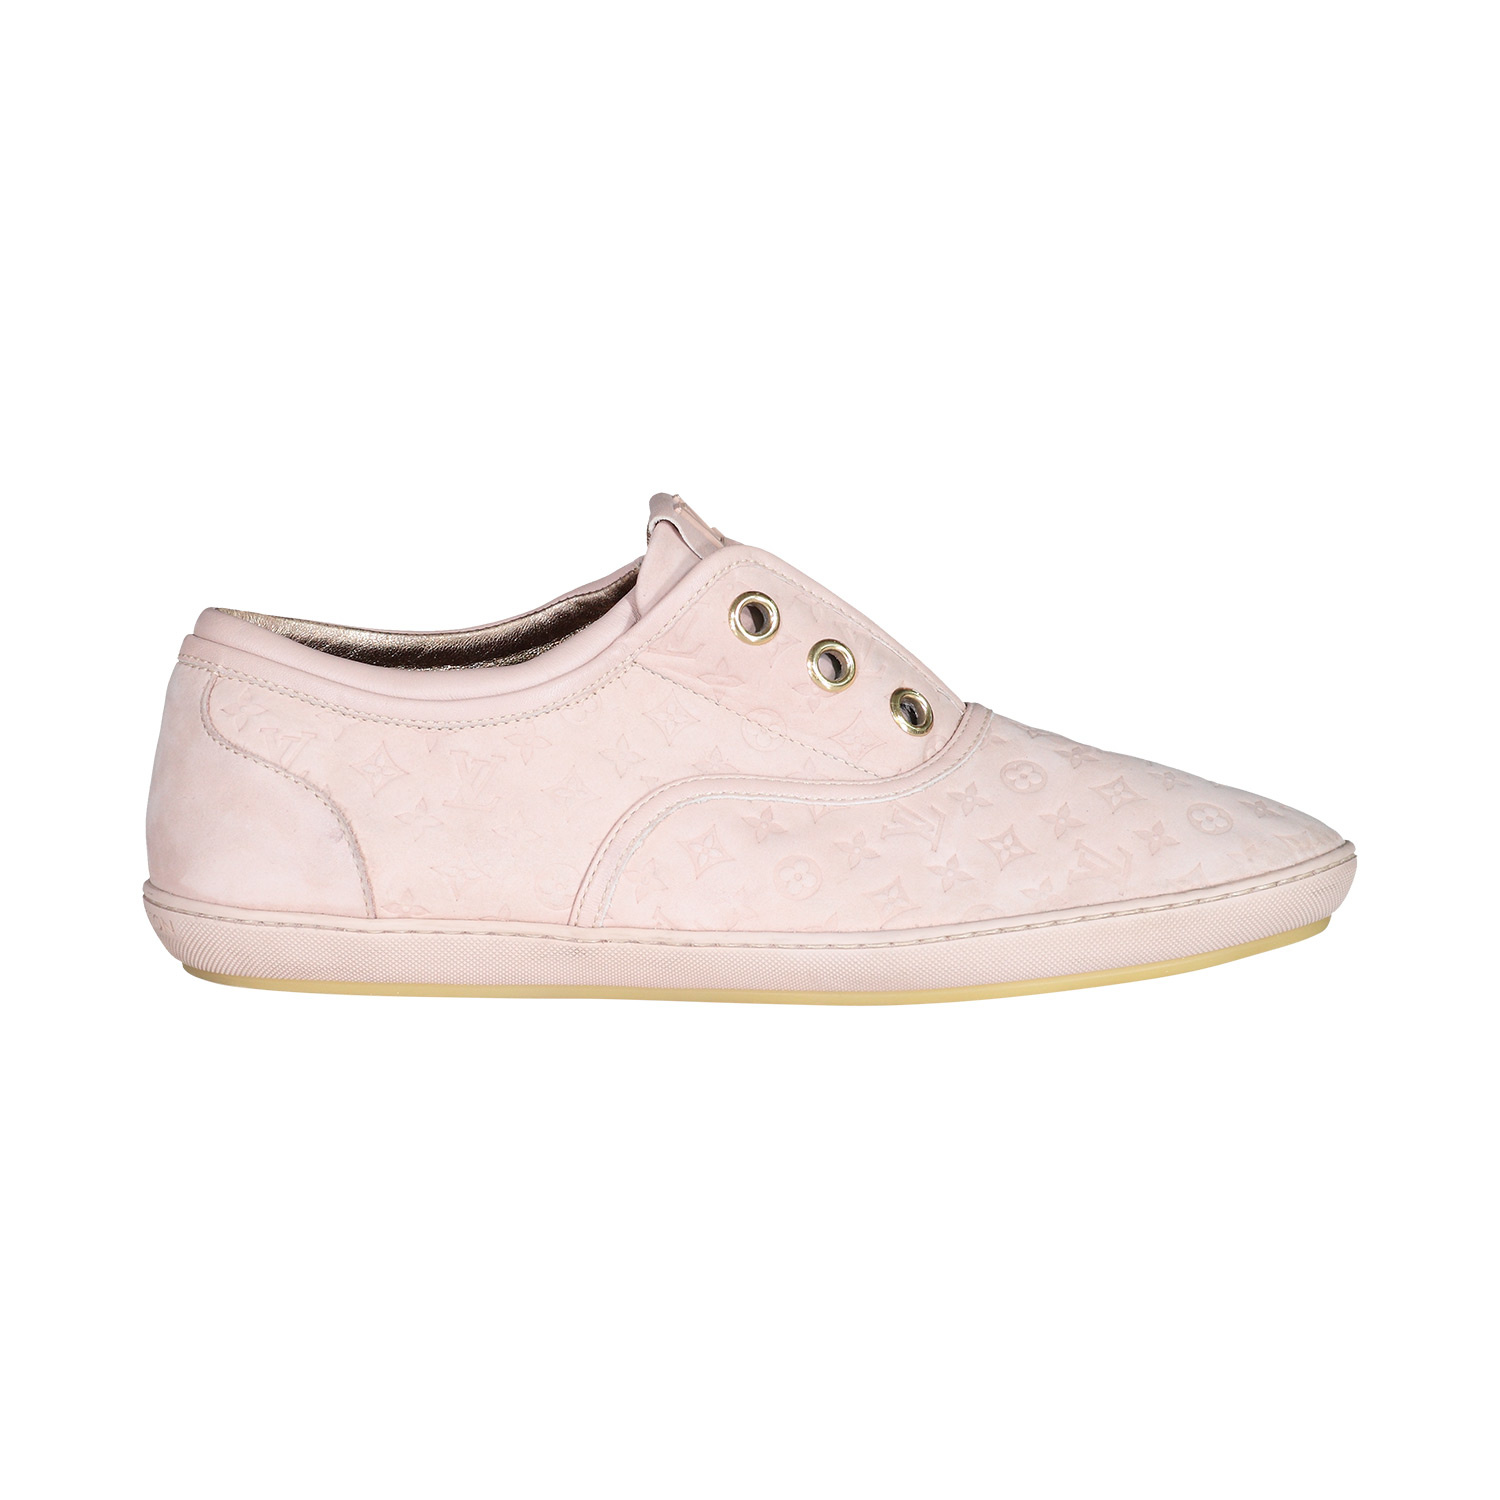 Louis Vuitton N/A - Louis Vuitton Dusty Pink Suede Mongram Low-top Sneakers